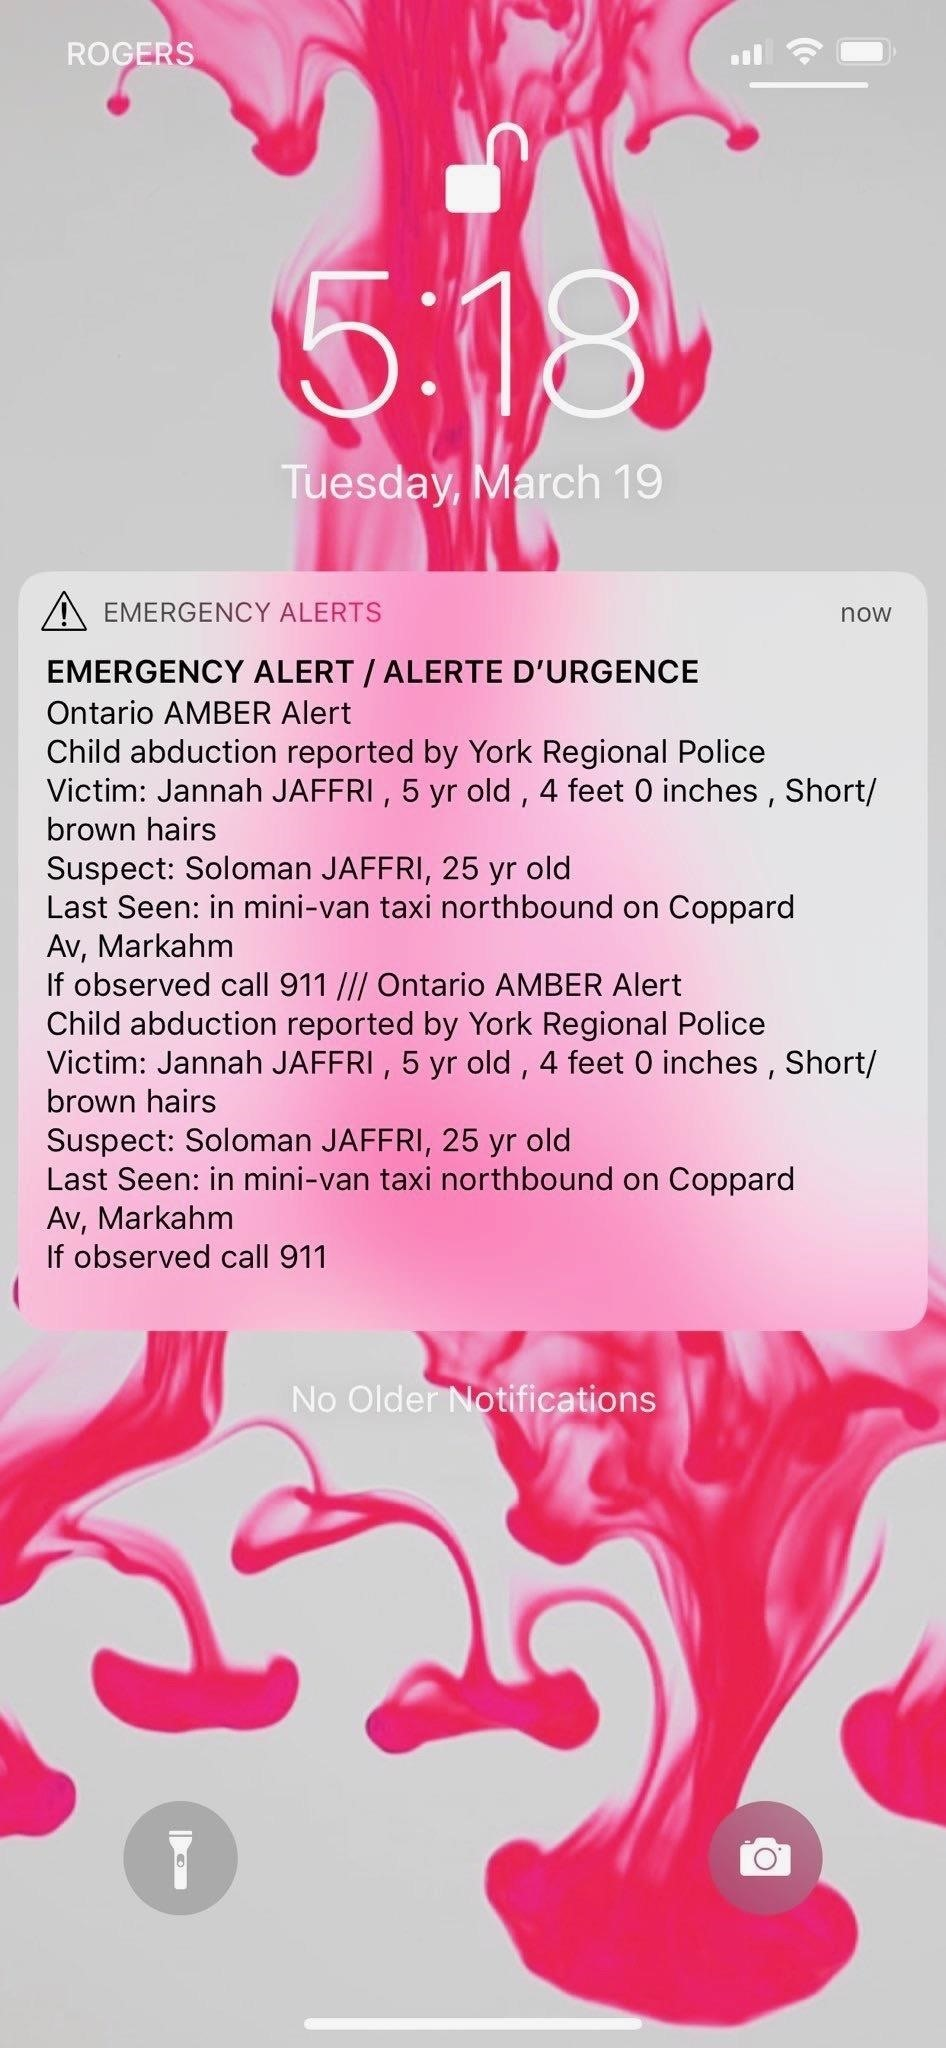 Disable Amber, Emergency, Public Safety & Other Government Alerts on Your iPhone for Some Peace & Quiet